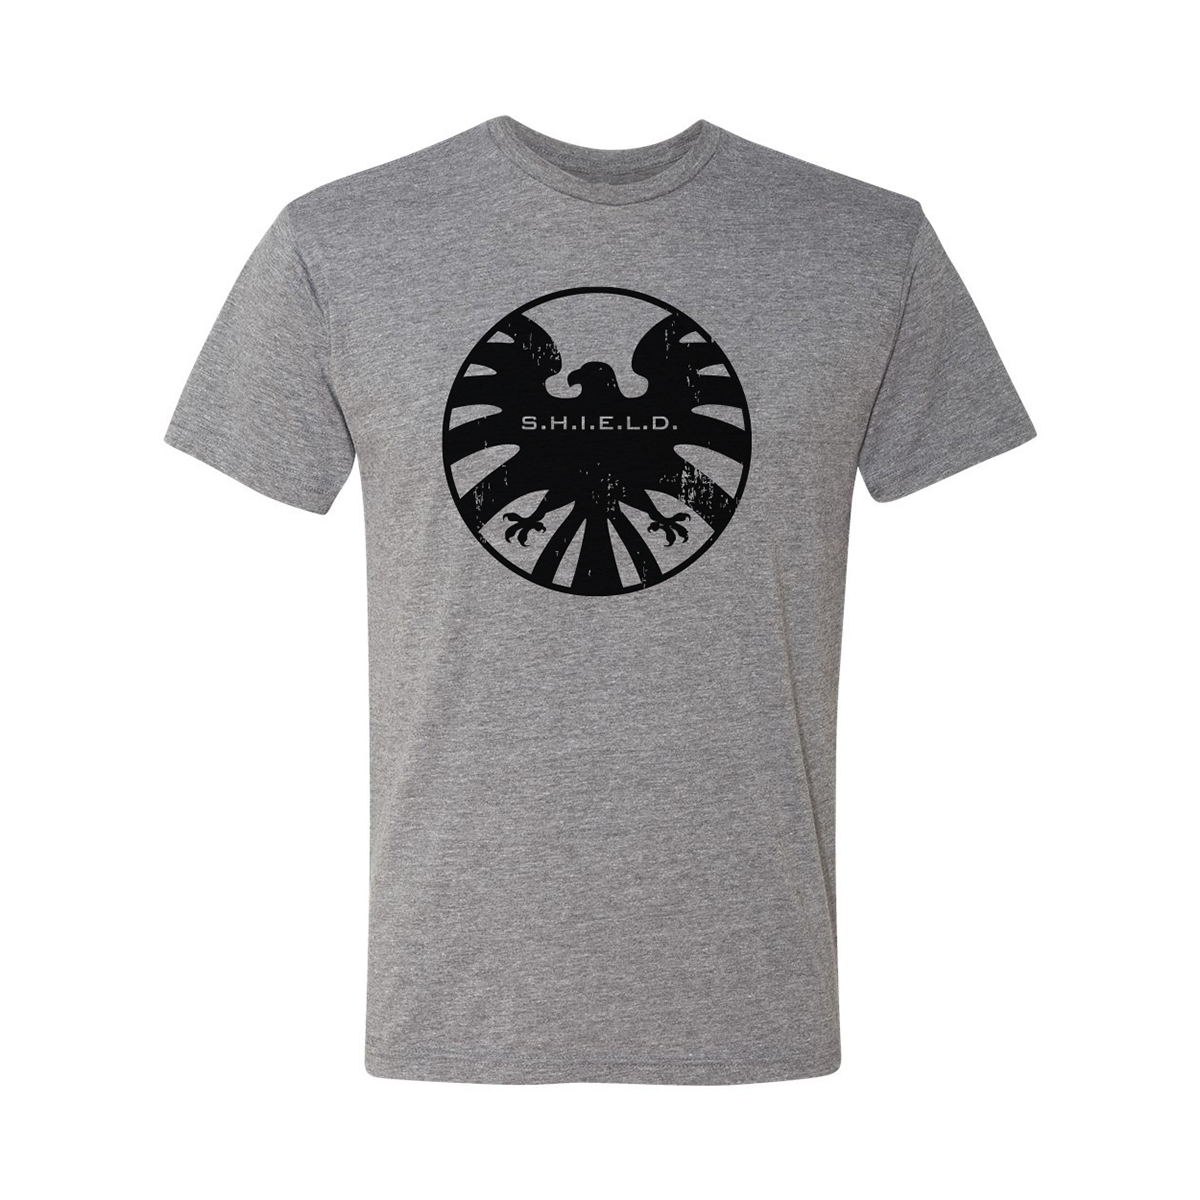 Marvel's Agents of S.H.I.E.L.D Distressed Crest T-Shirt